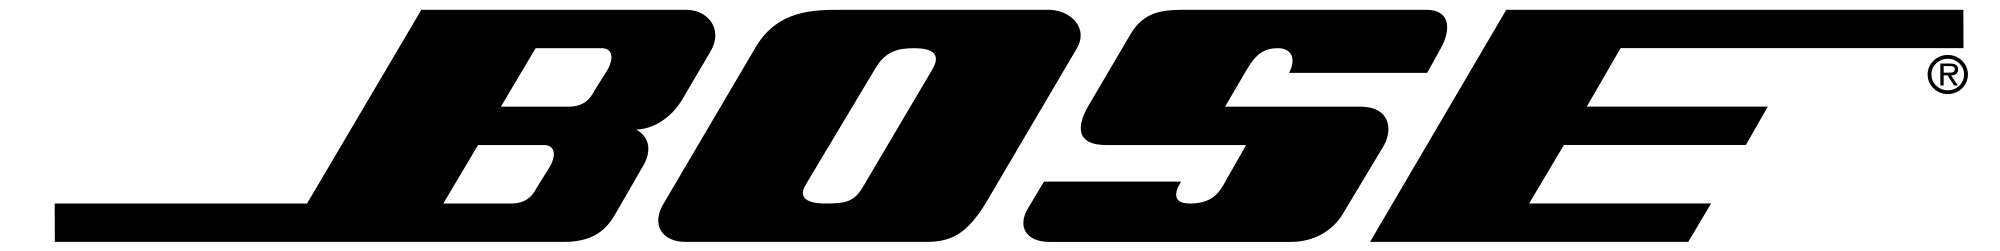 Bose Logo transparent PNG.